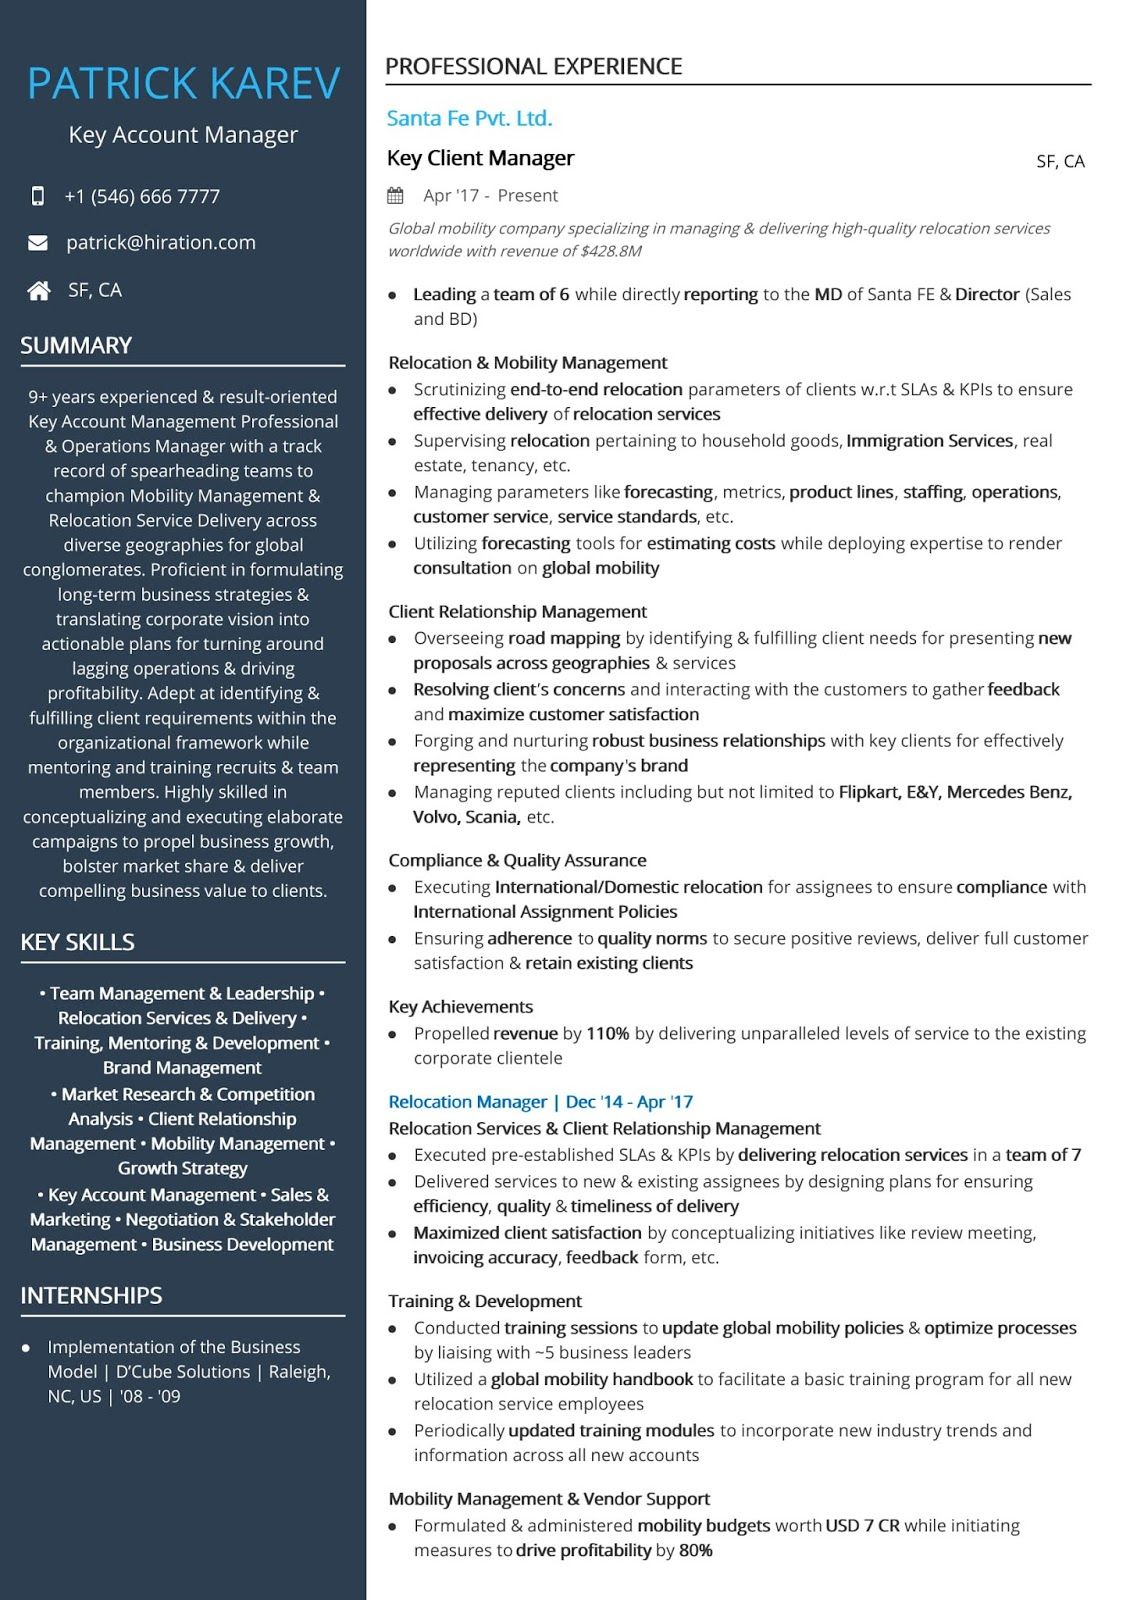 Pin By Skola Kiboro On Aspire To Achieve Job Resume Examples Accounting Manager Resume